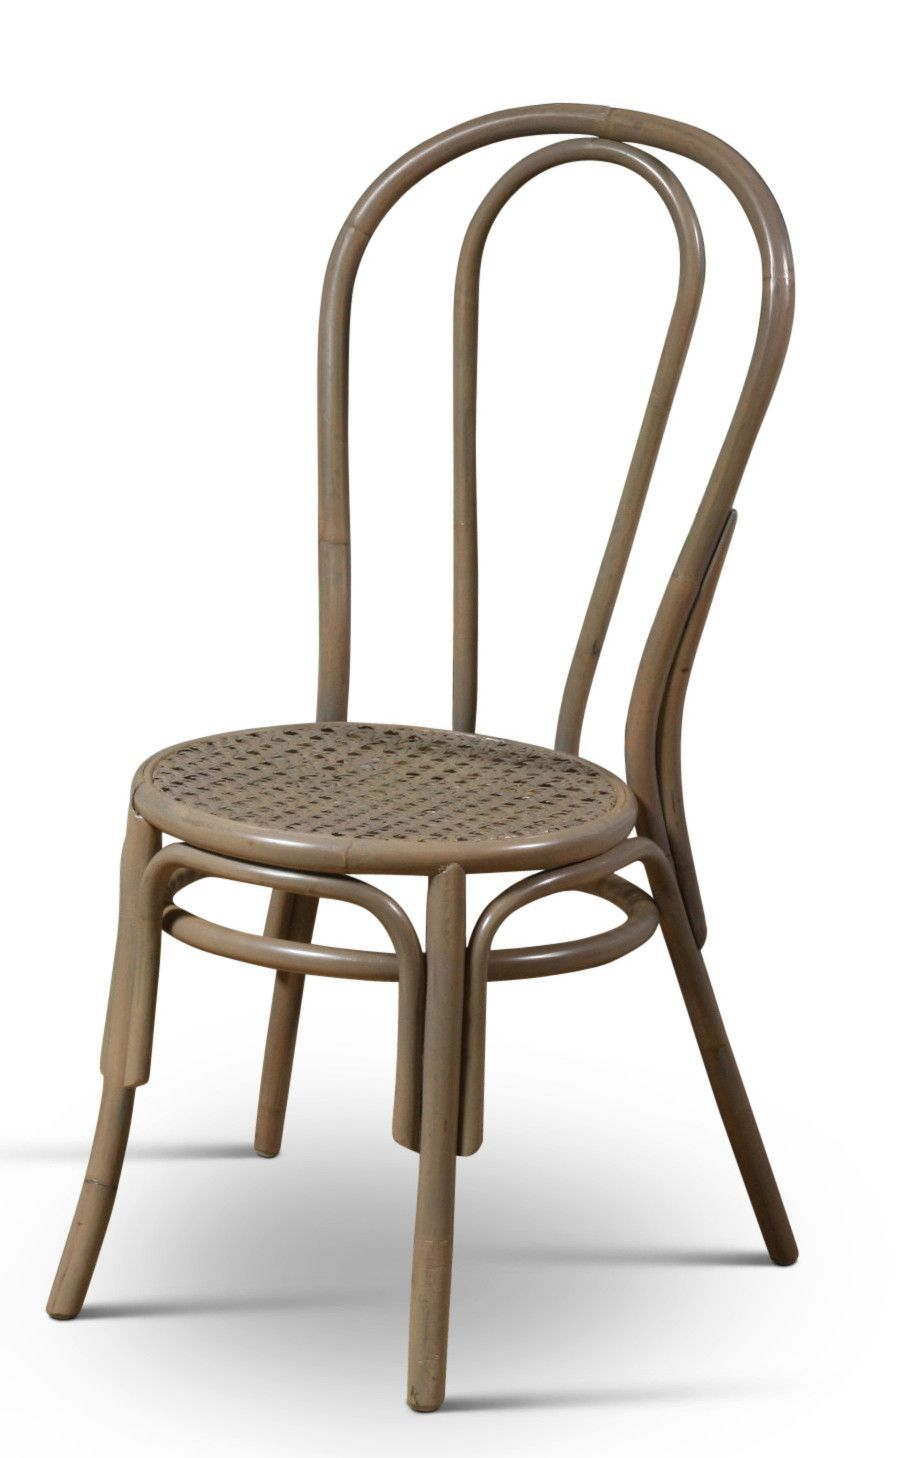 thonet style bentwood rattan chairs in grey gifts all around rh pinterest es